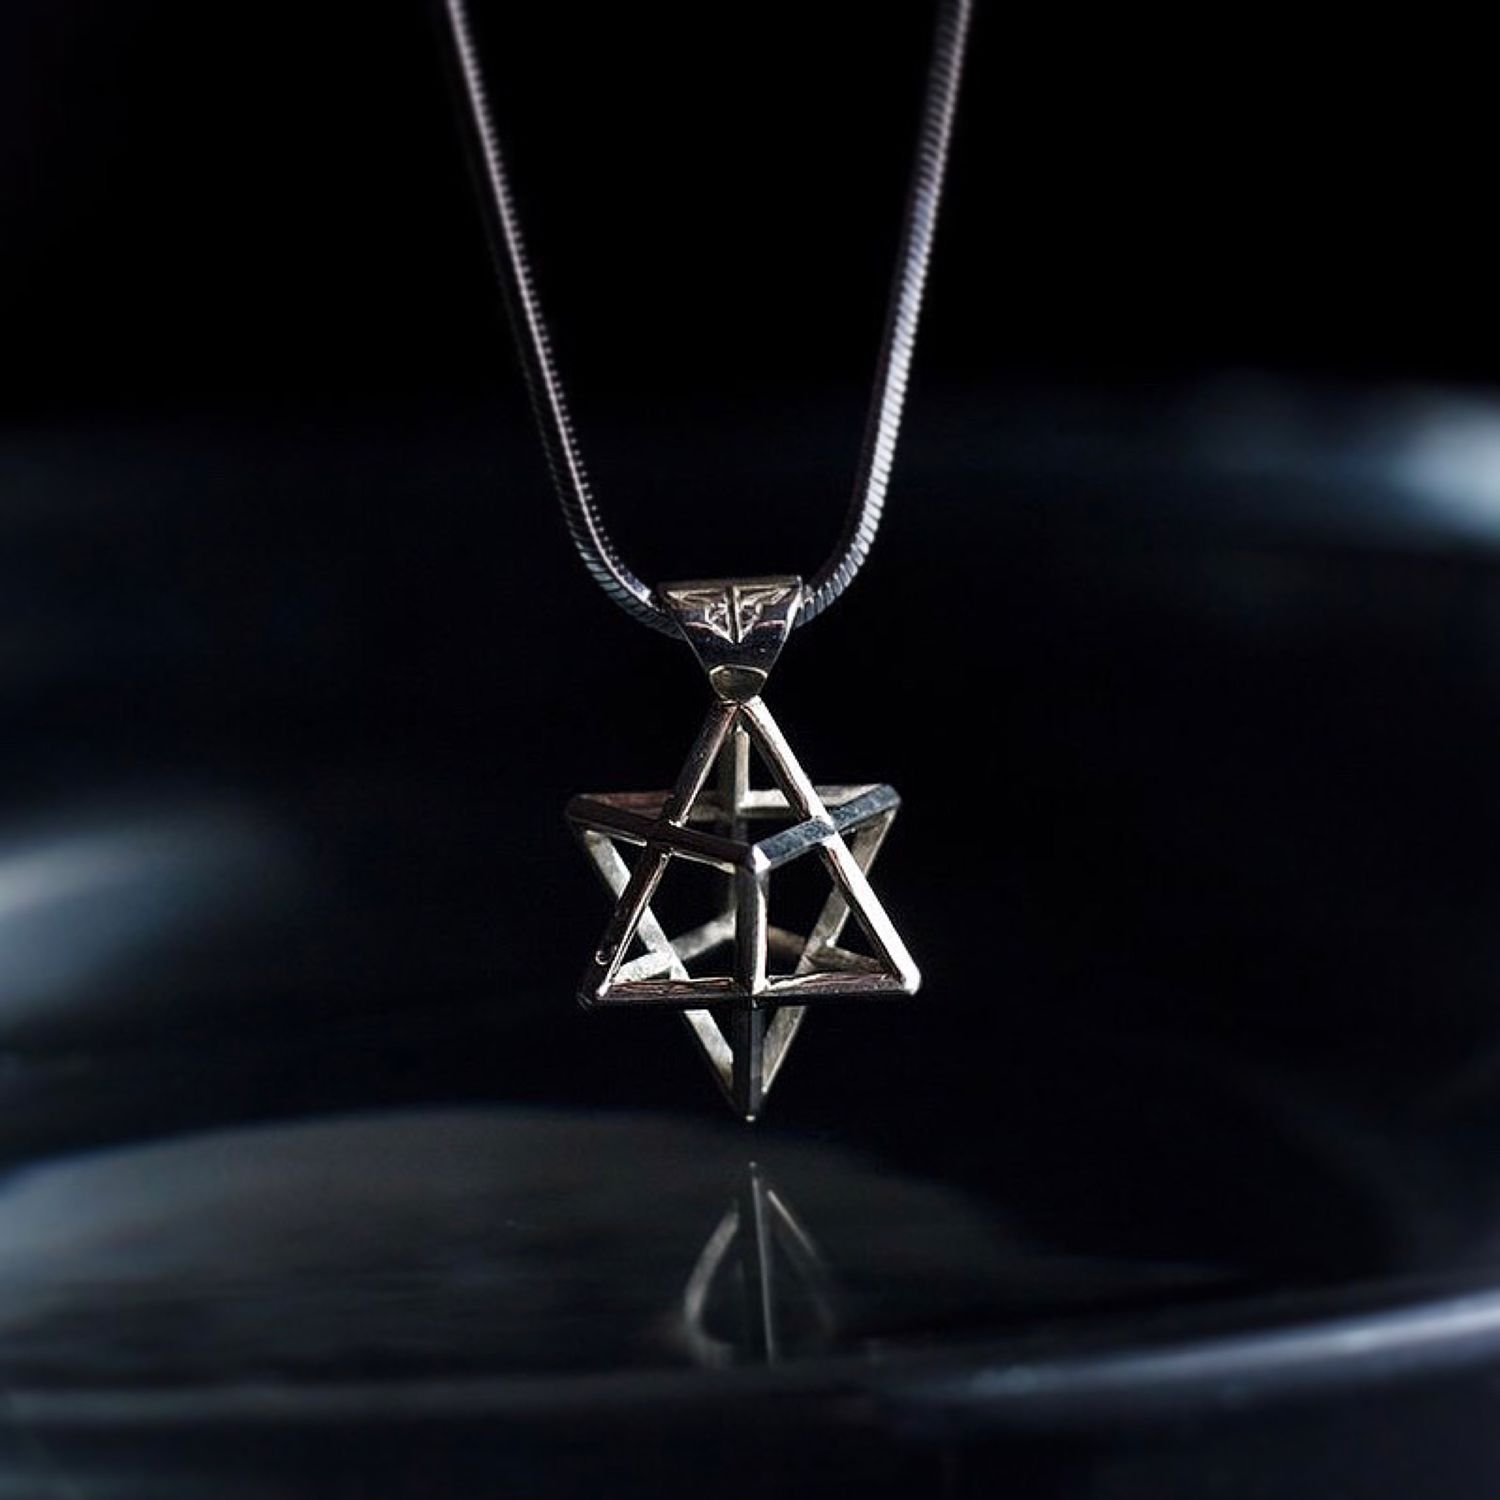 Merkabah Pendant | Star of David | 925 Sterling silver, Pendant, Moscow,  Фото №1